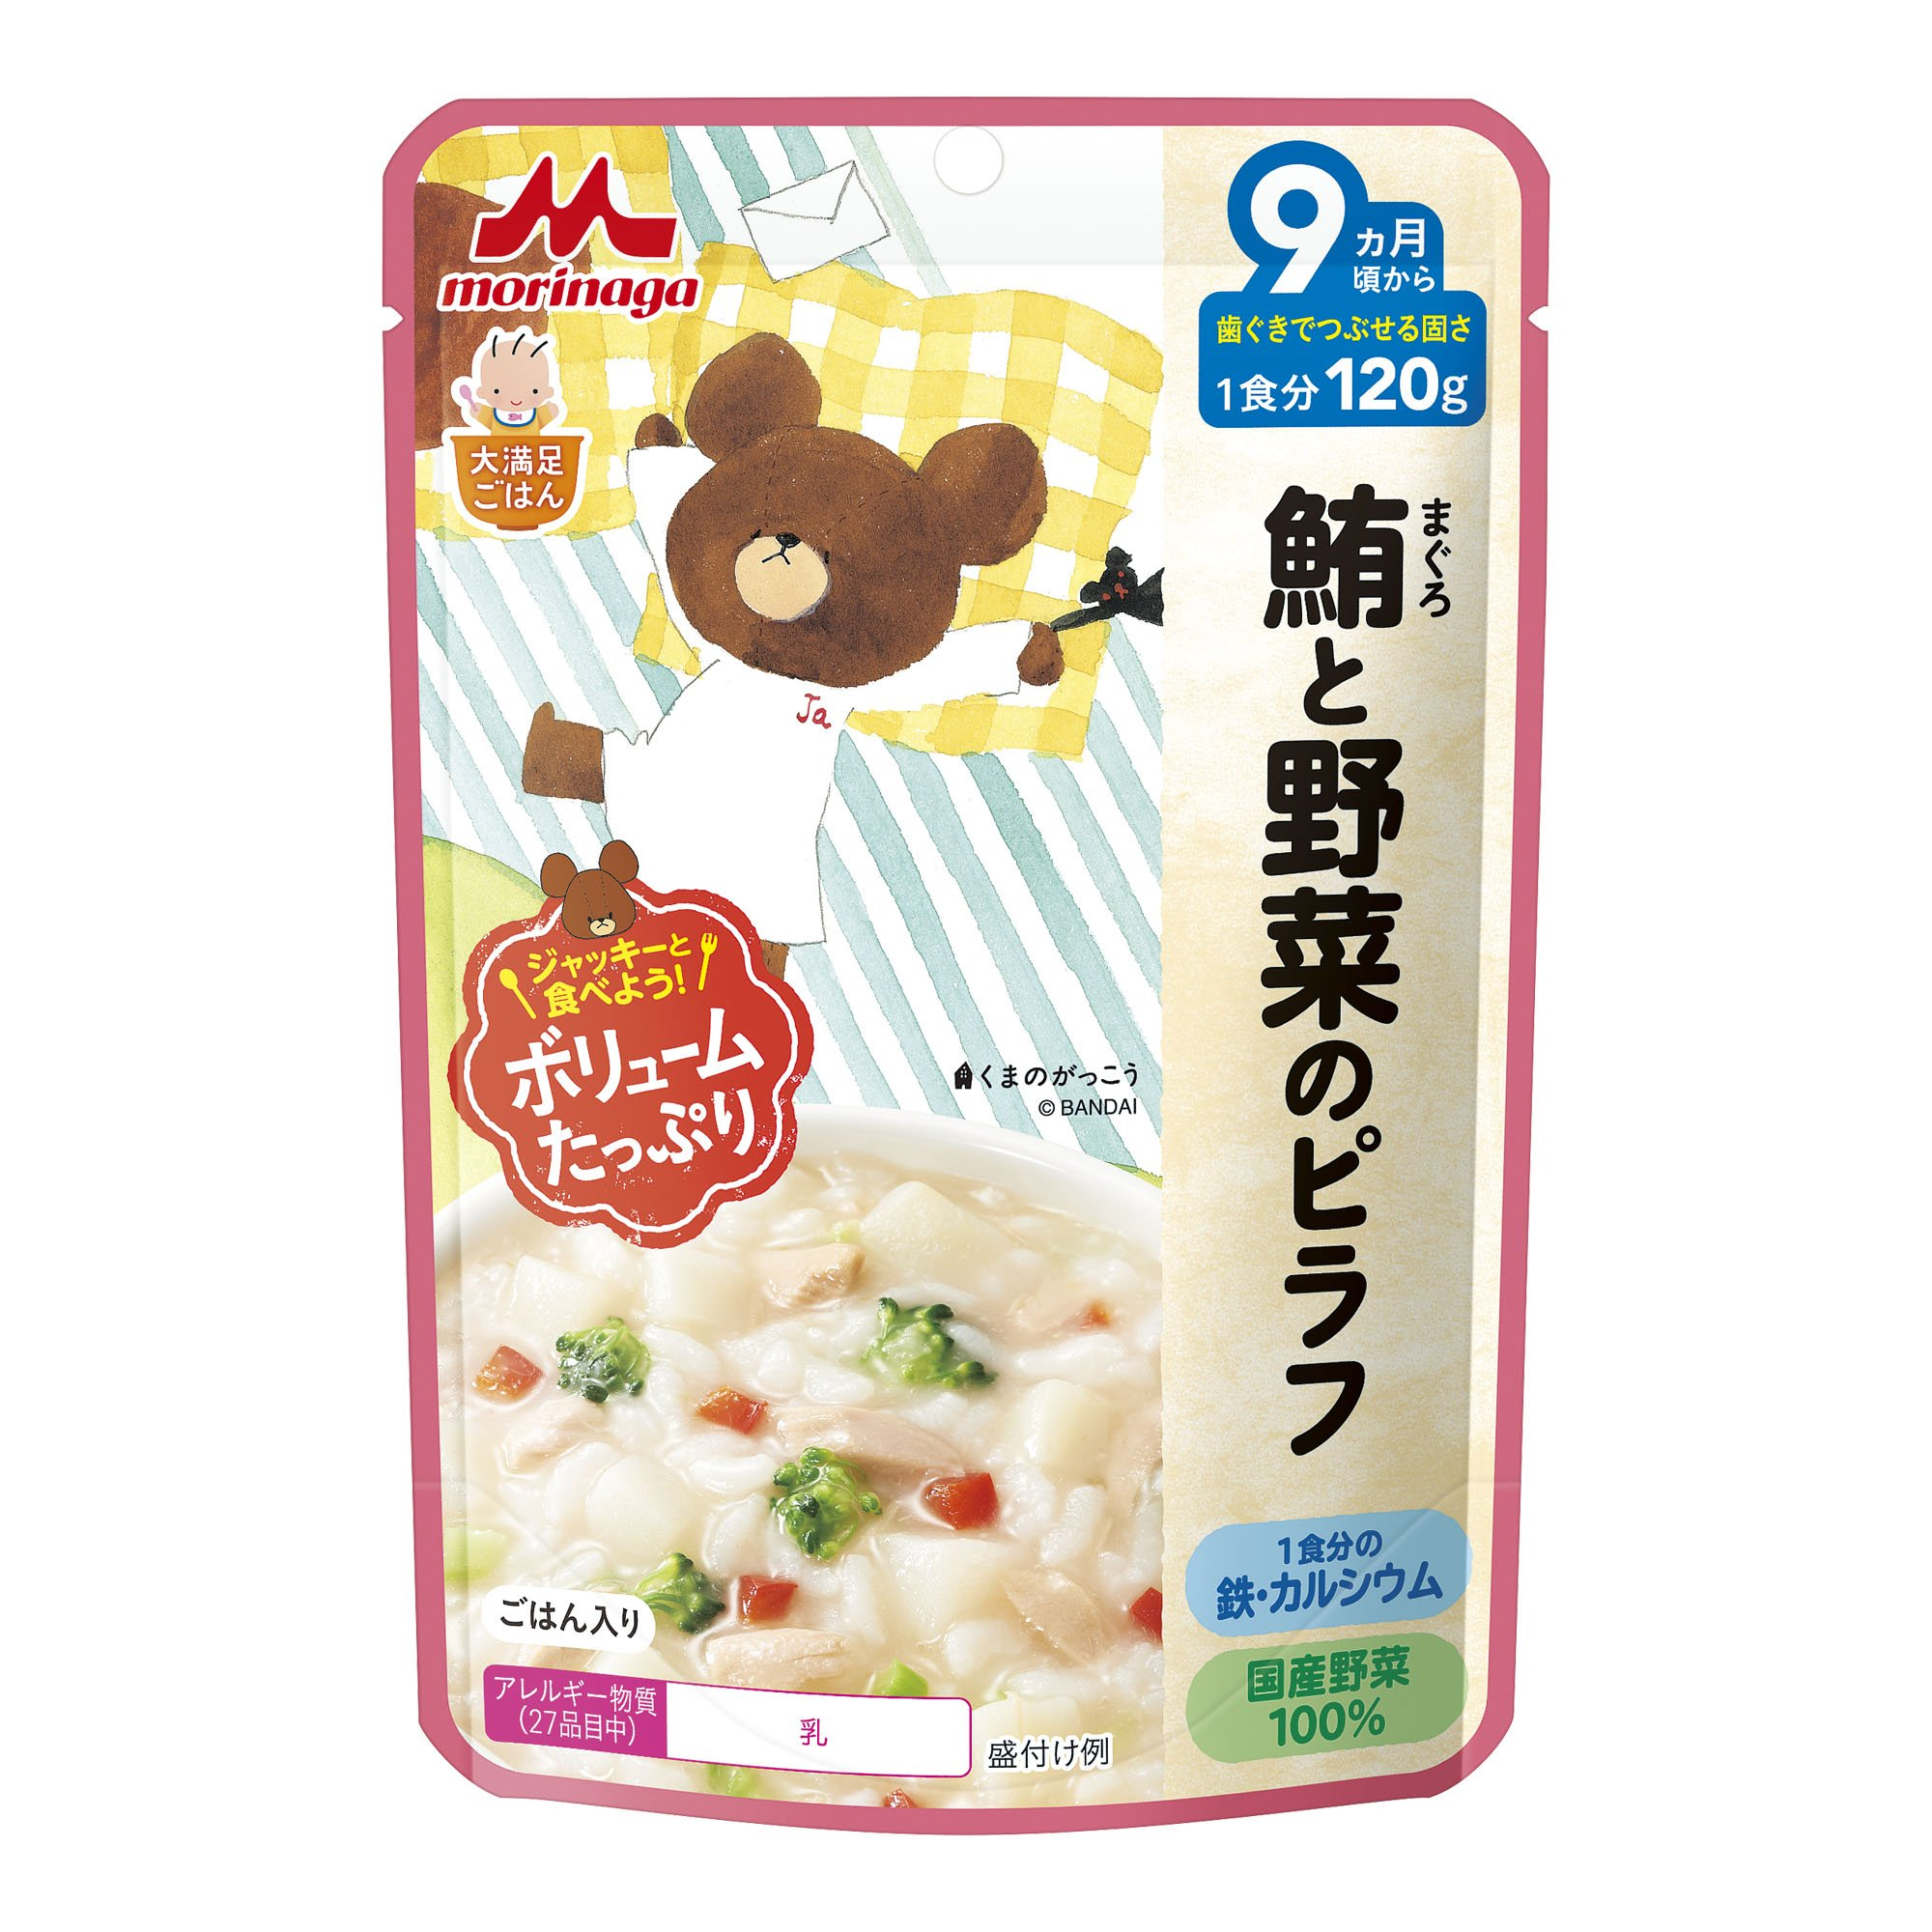 Morinaga 1 servings 120gX12 pieces from large satisfaction rice tuna and vegetable pilaf 9 months around May of